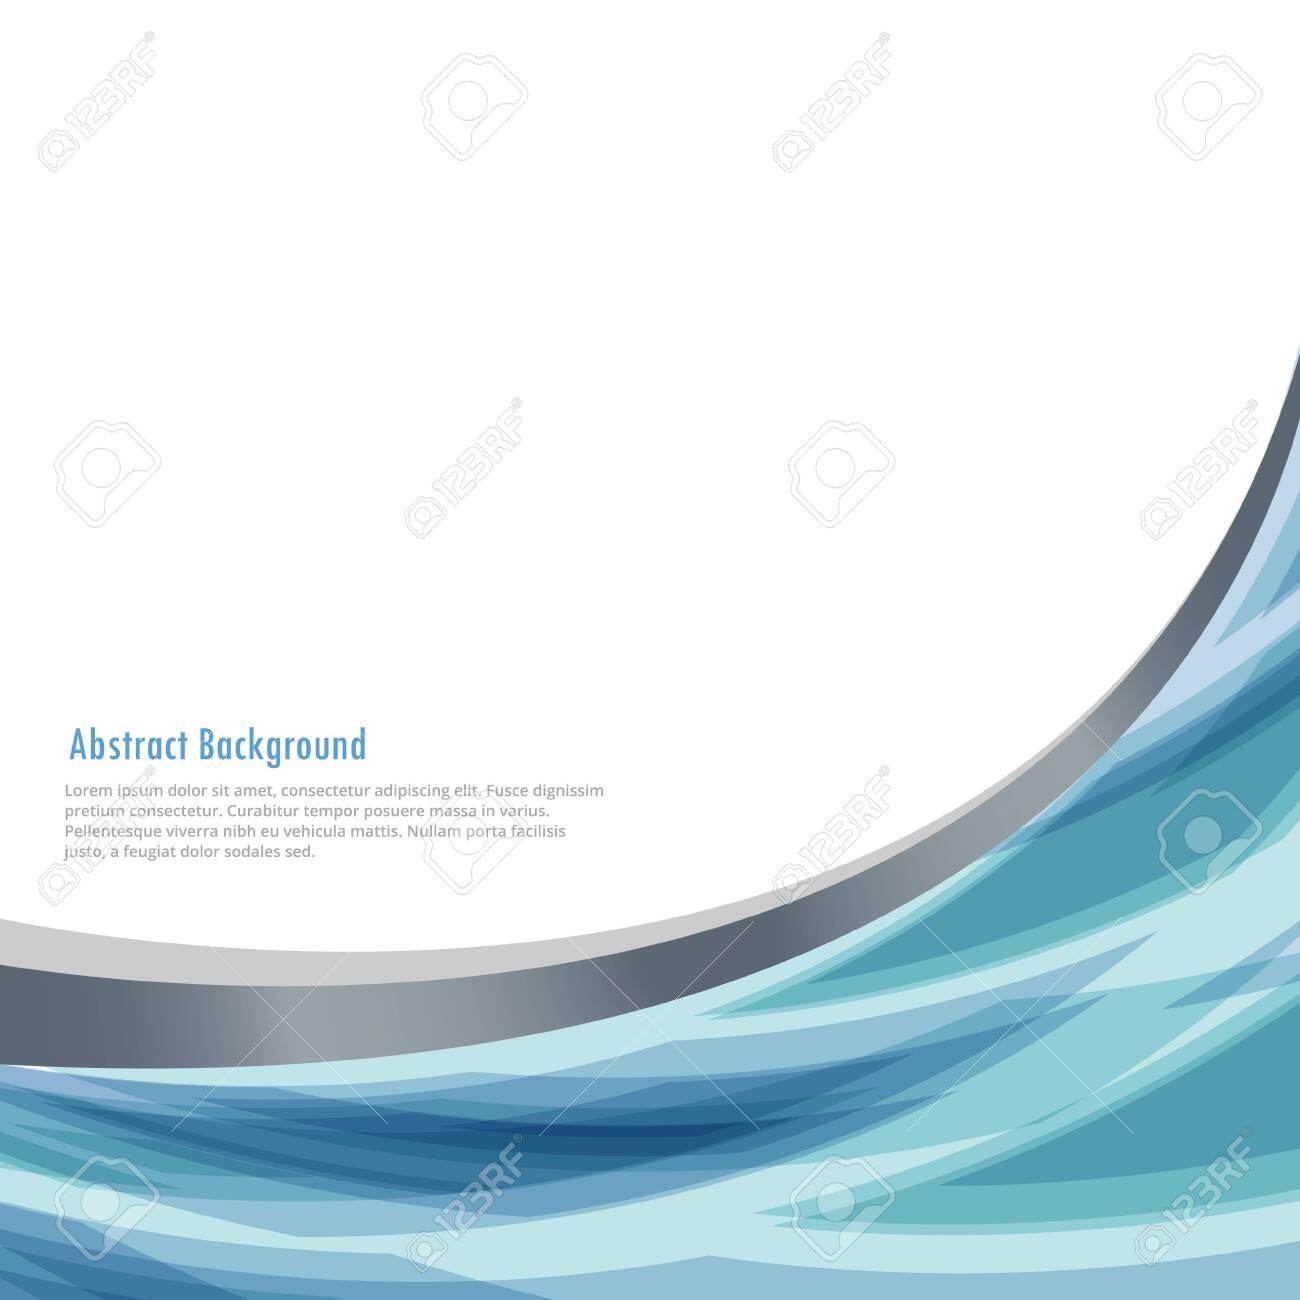 business background with abstract wave - 149698413